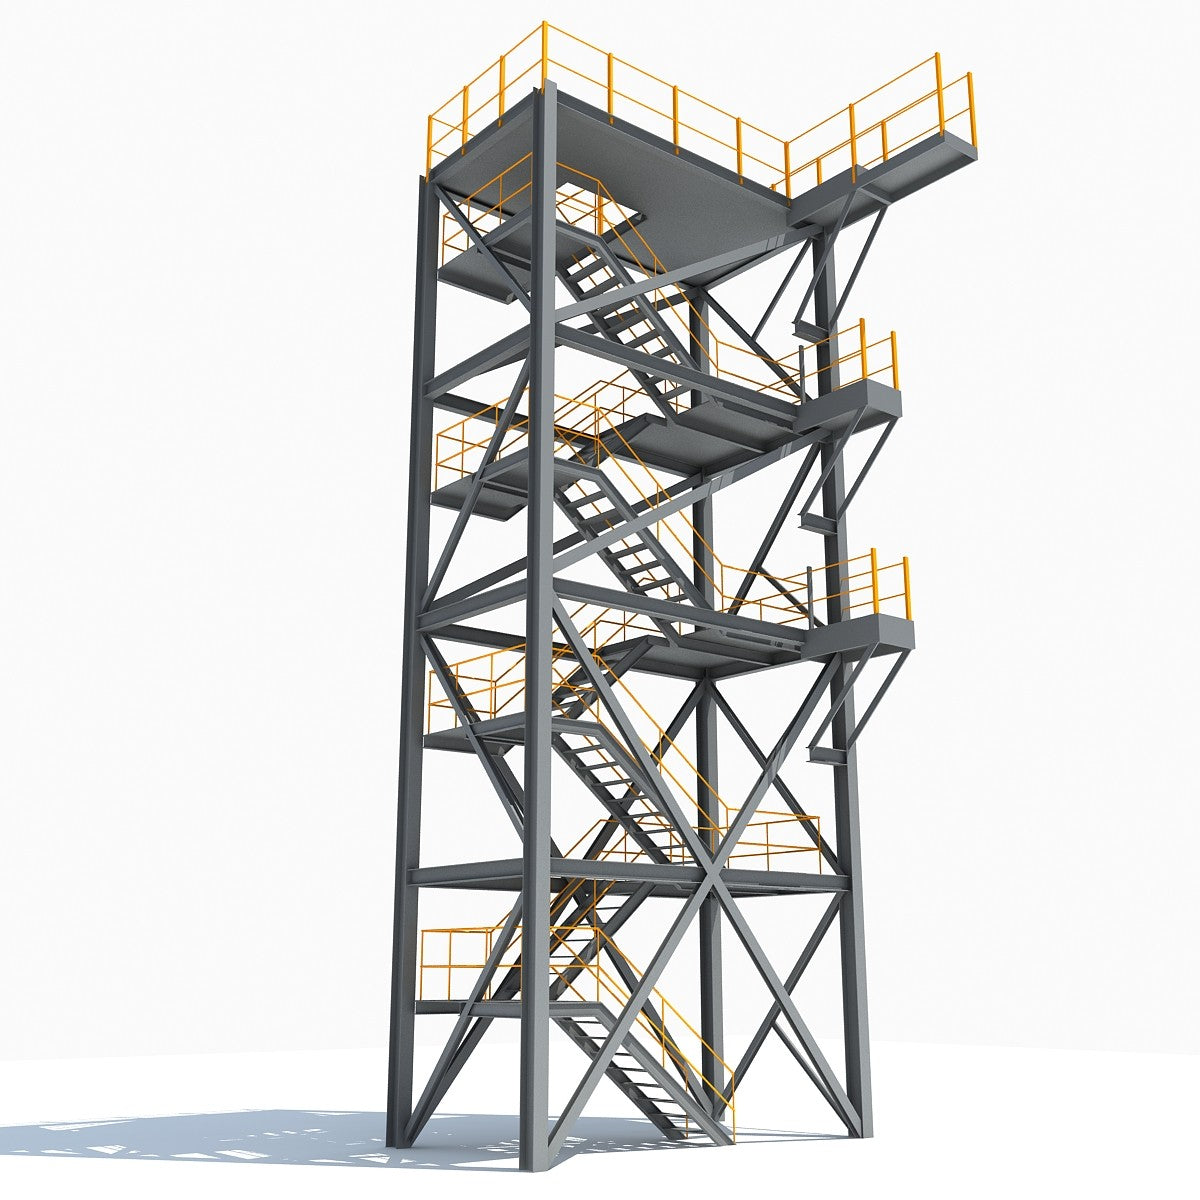 3D Industrial Towers Models